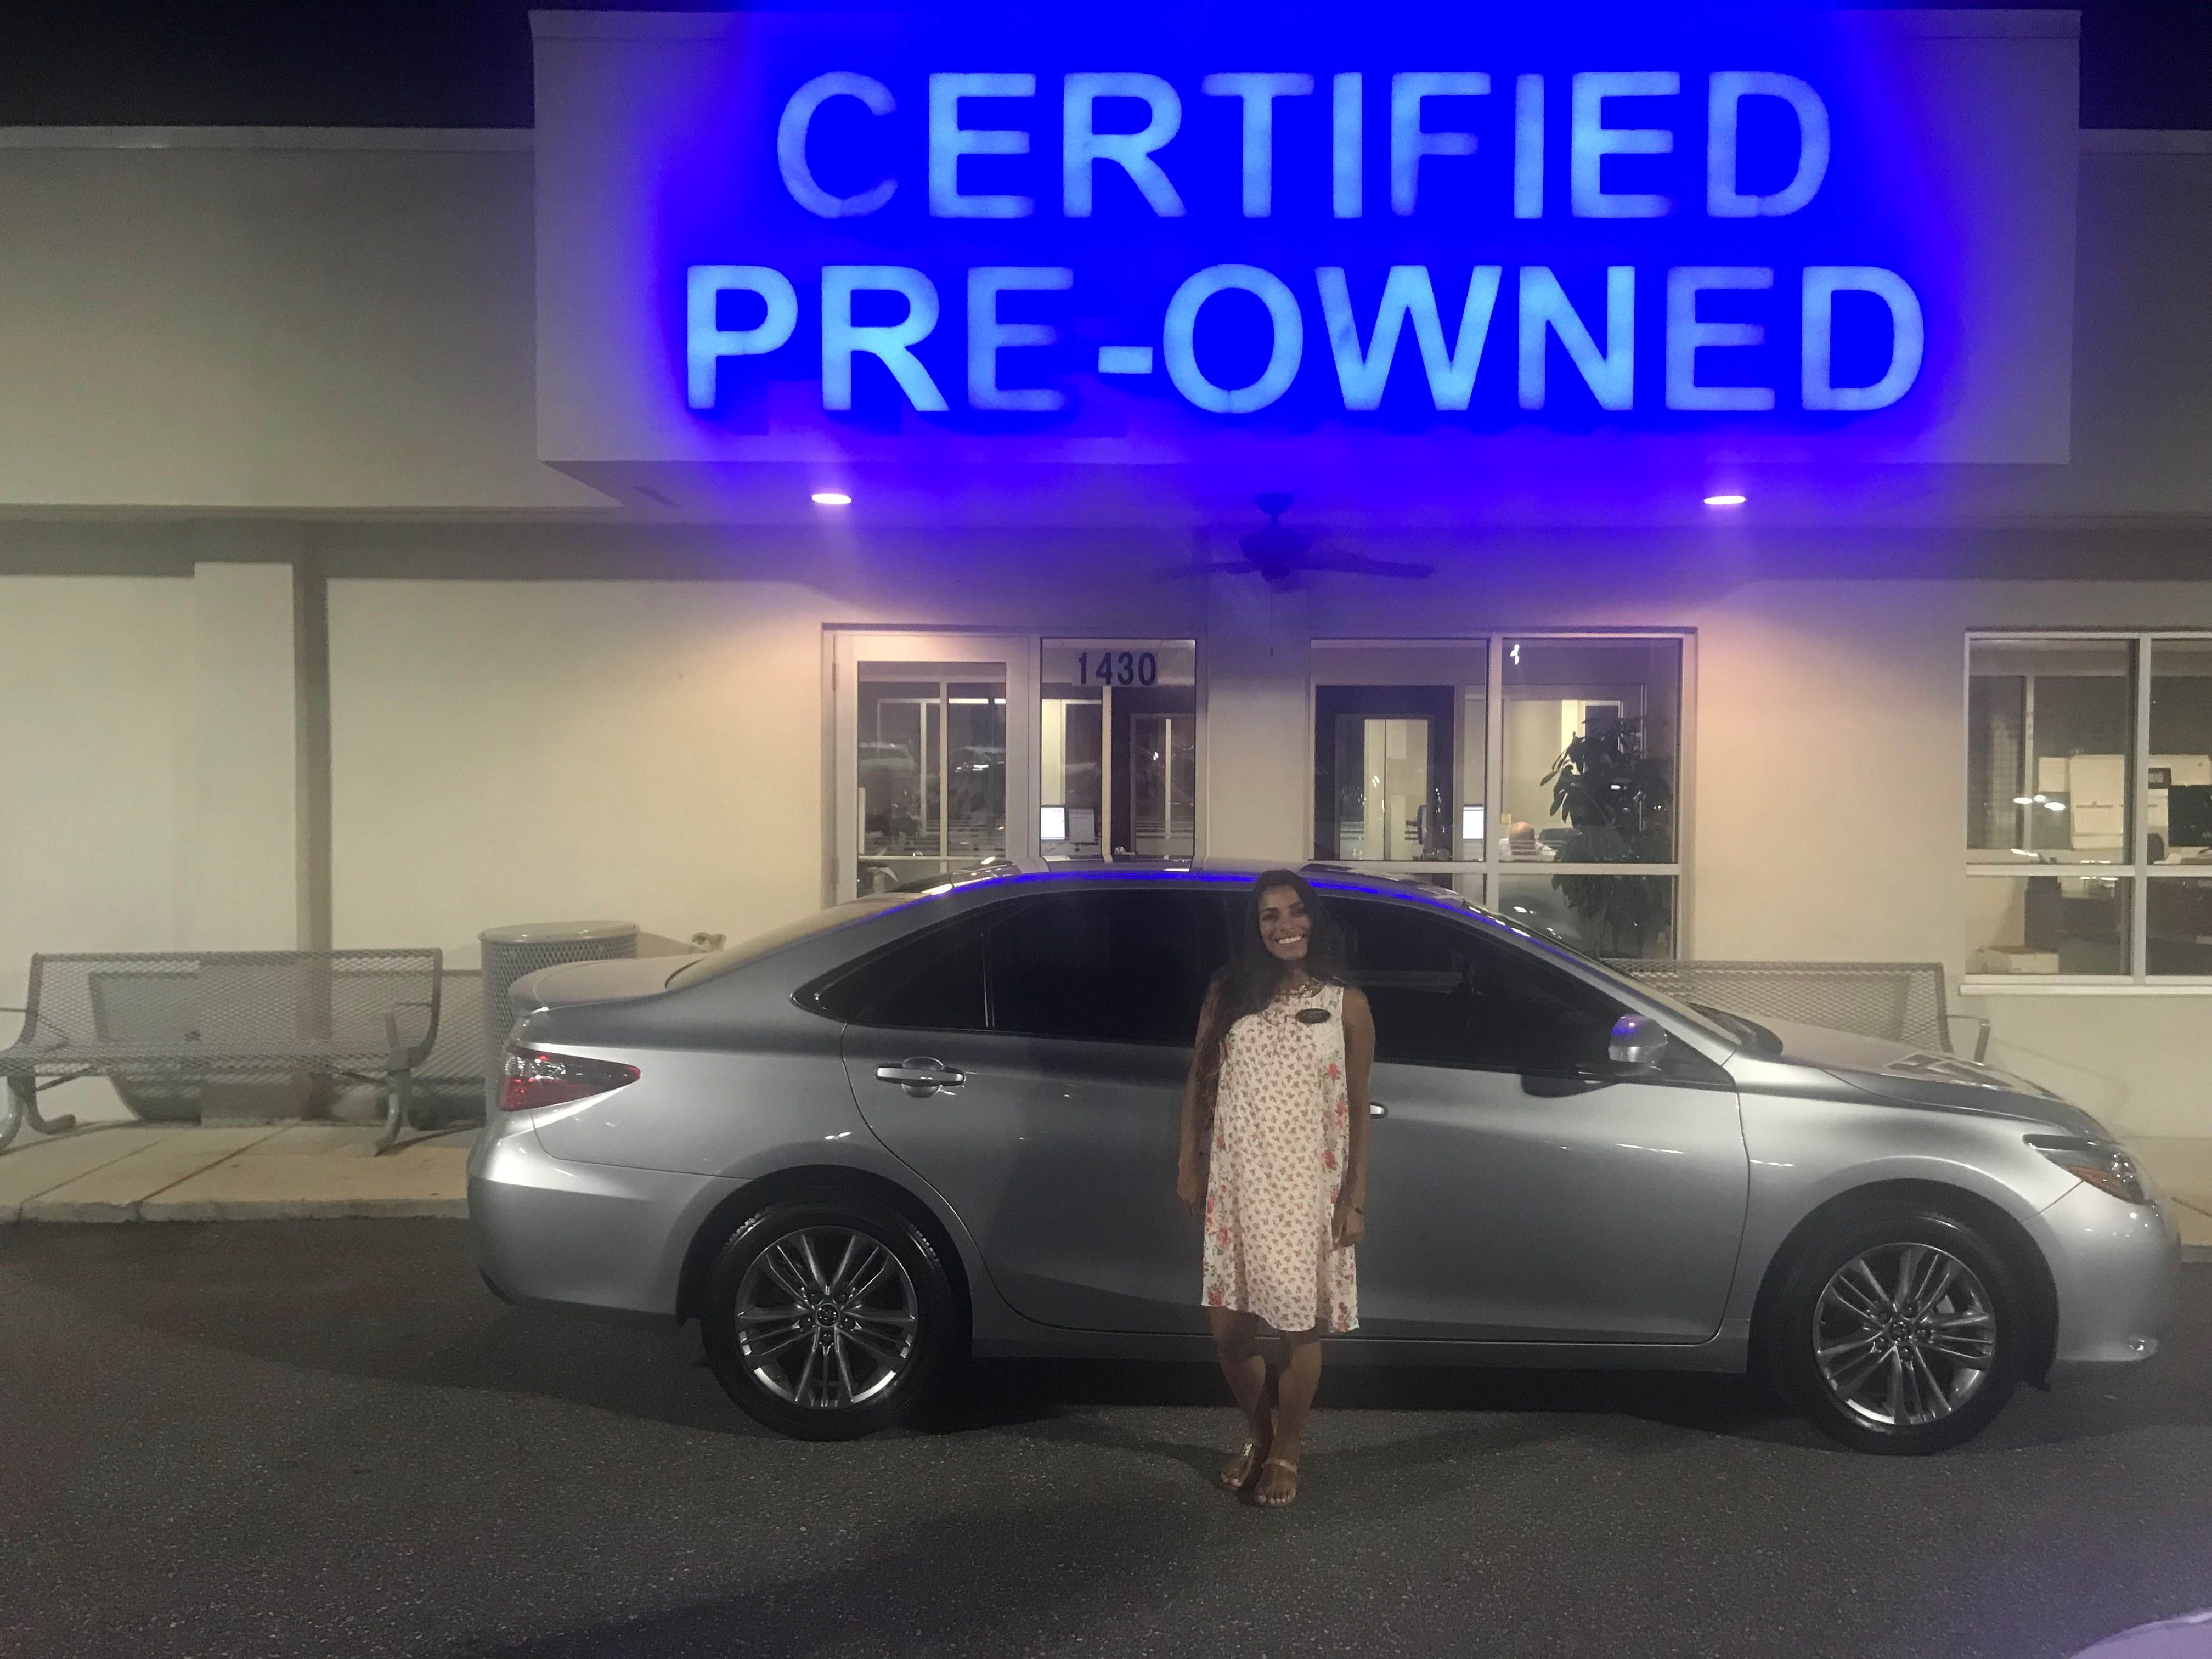 Thanks Mrs. Madera! Have fun in your new 2016 Toyota Camry